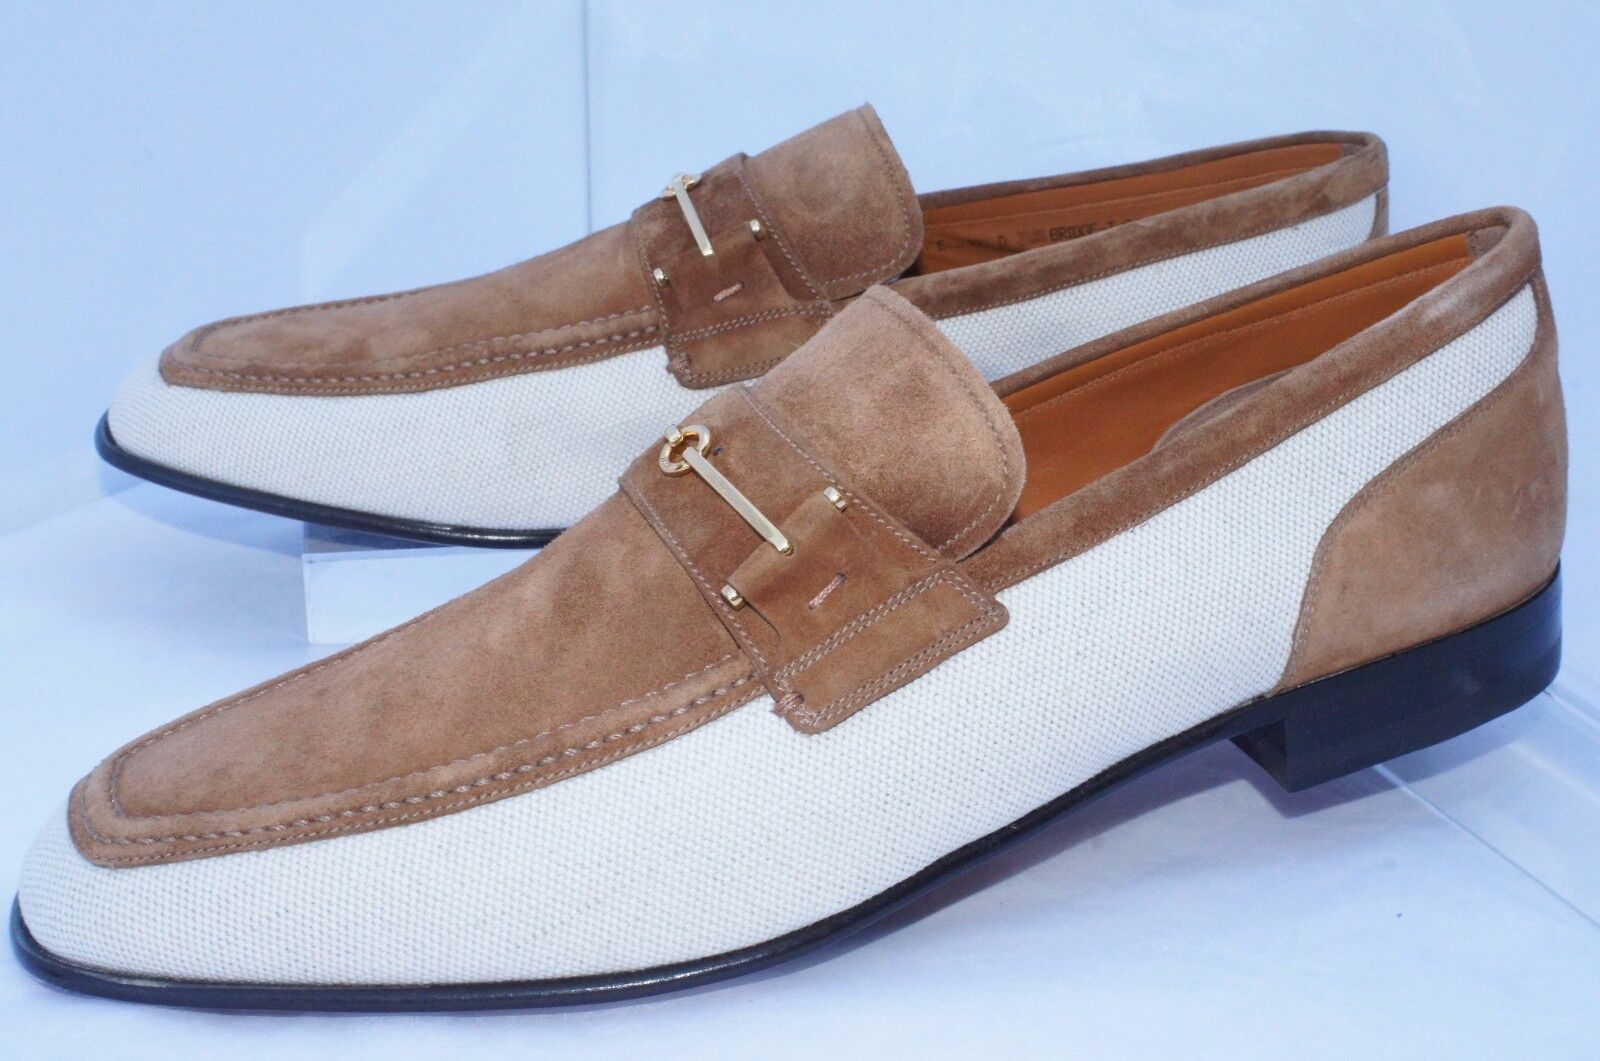 New Bally Men's Shoes Bridge Loafers Brown Drivers Size 10.5 43.5